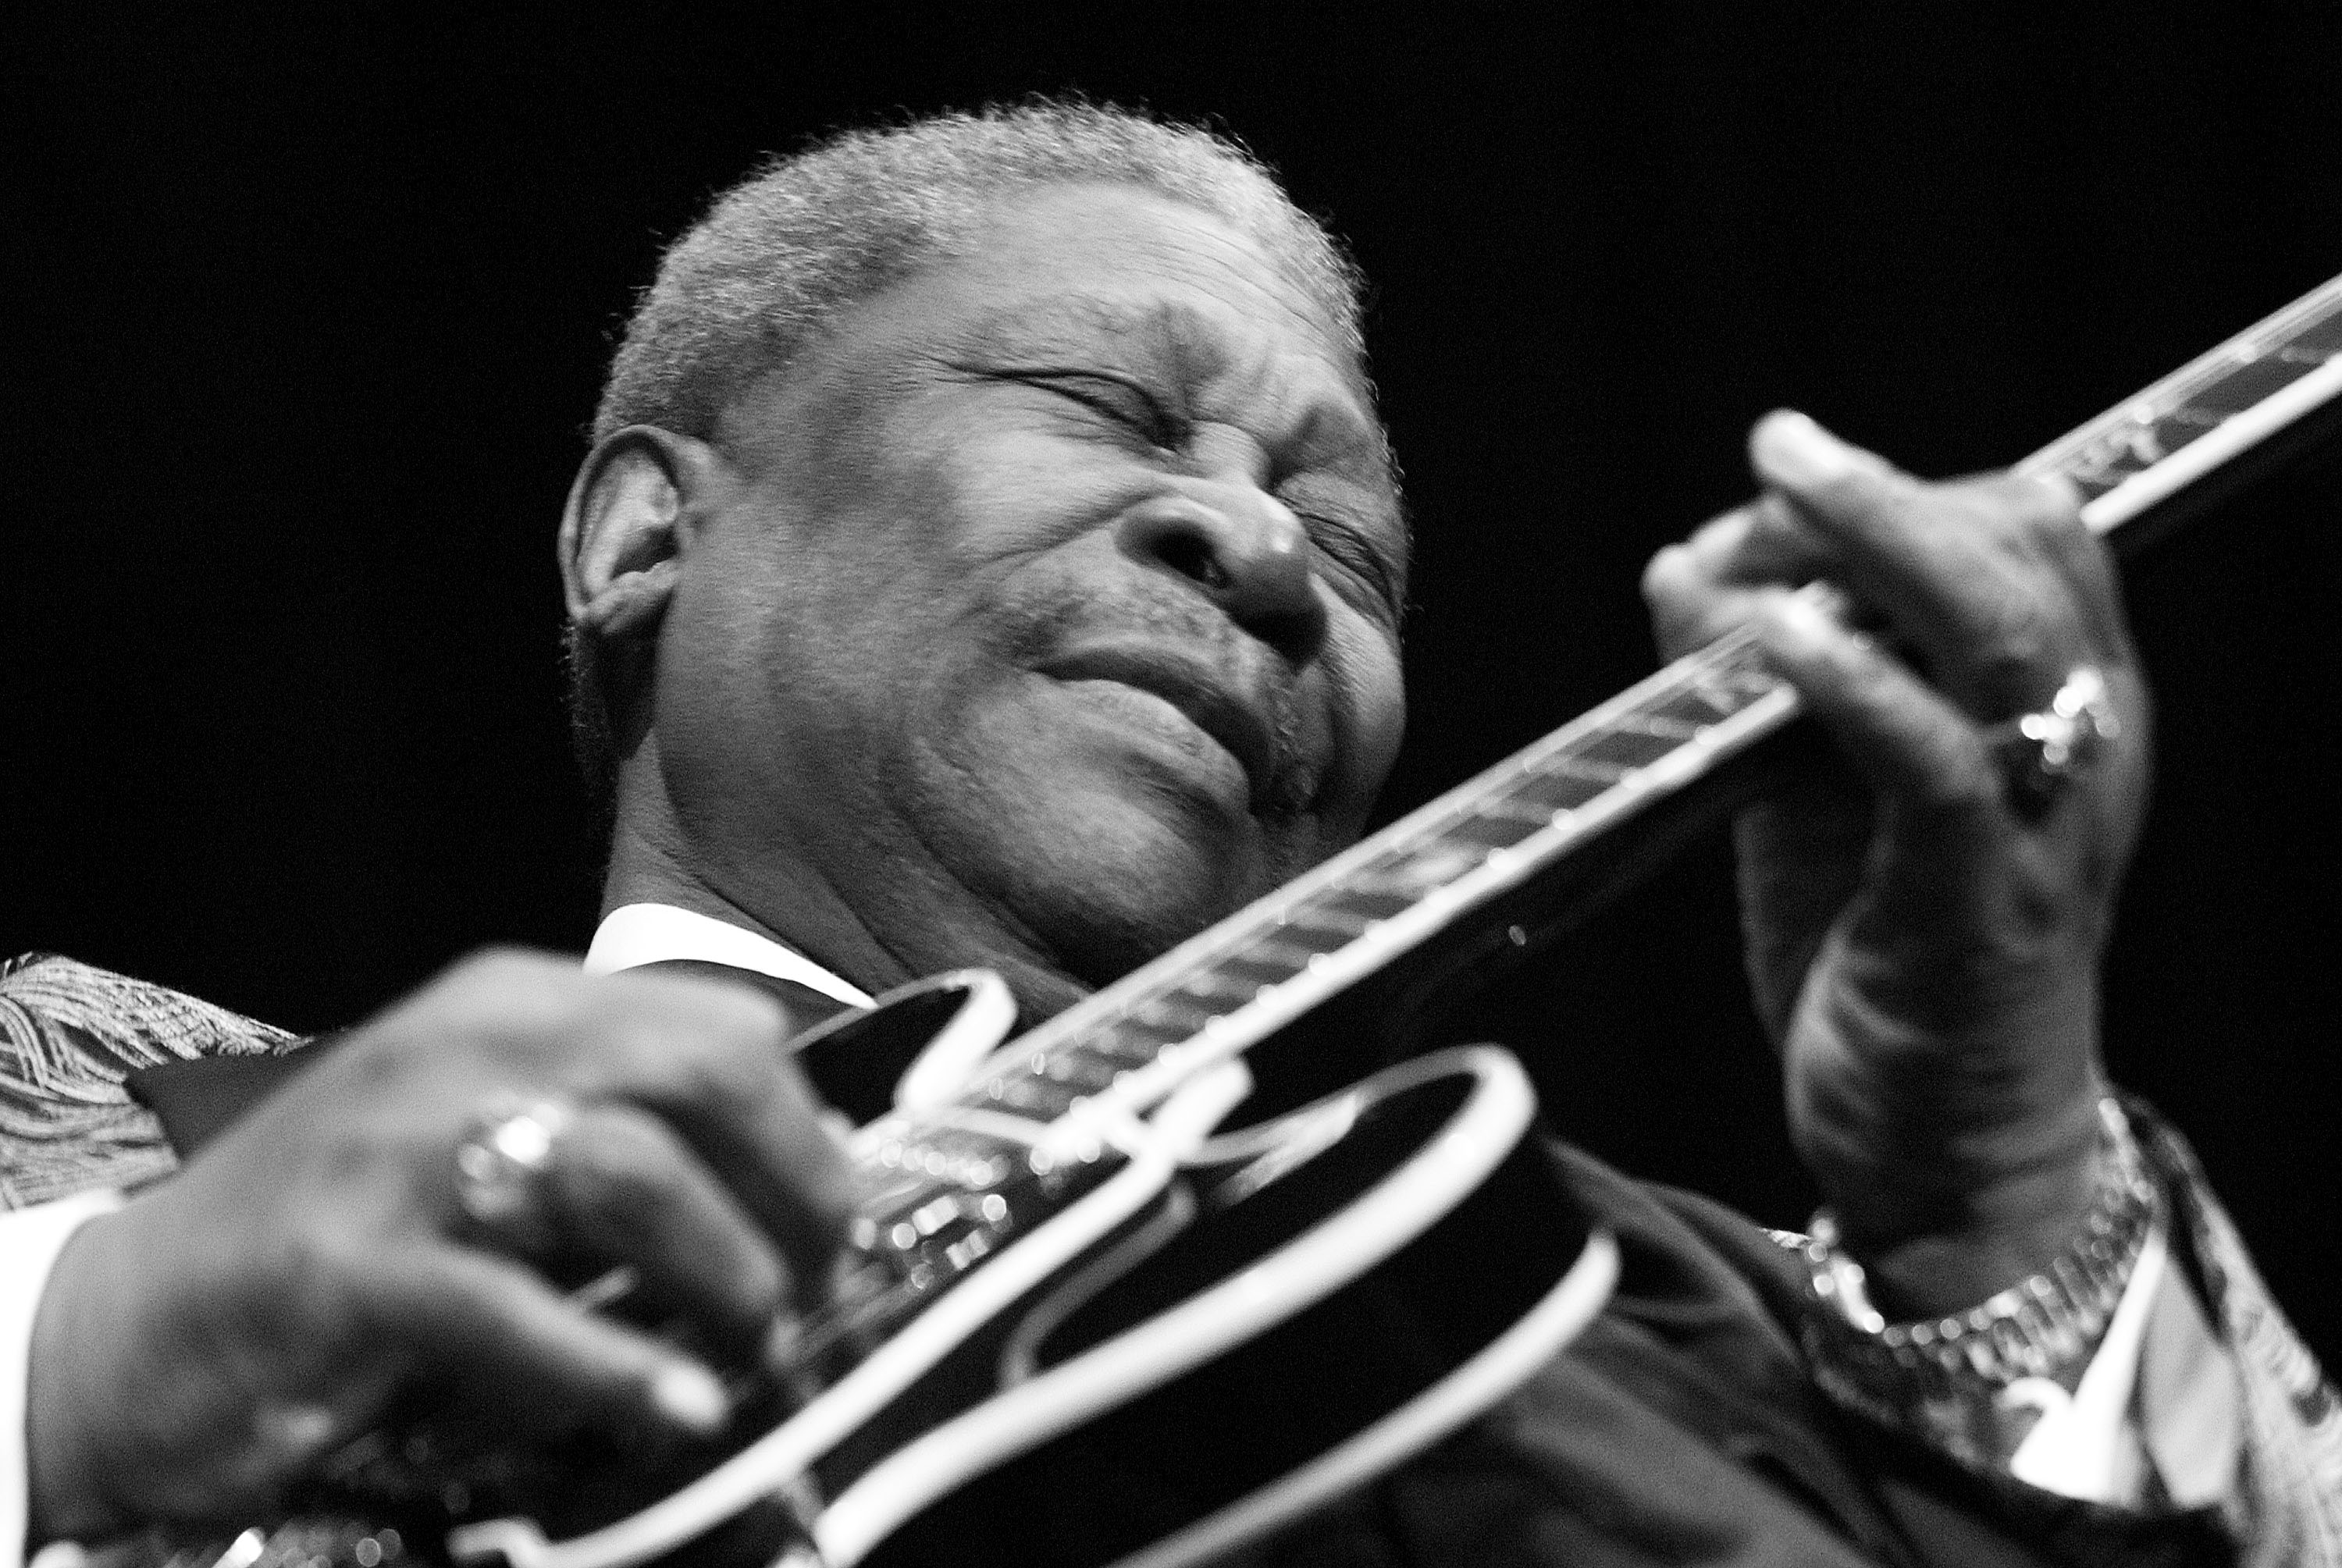 a biography of the blues riley b king famous guitarist Bb king was born riley b king in itta bena, mississippi on september 16, 1925 his parents, nora ella and albert l king were sharecroppers on a cotton plantation as a child, his guitar.